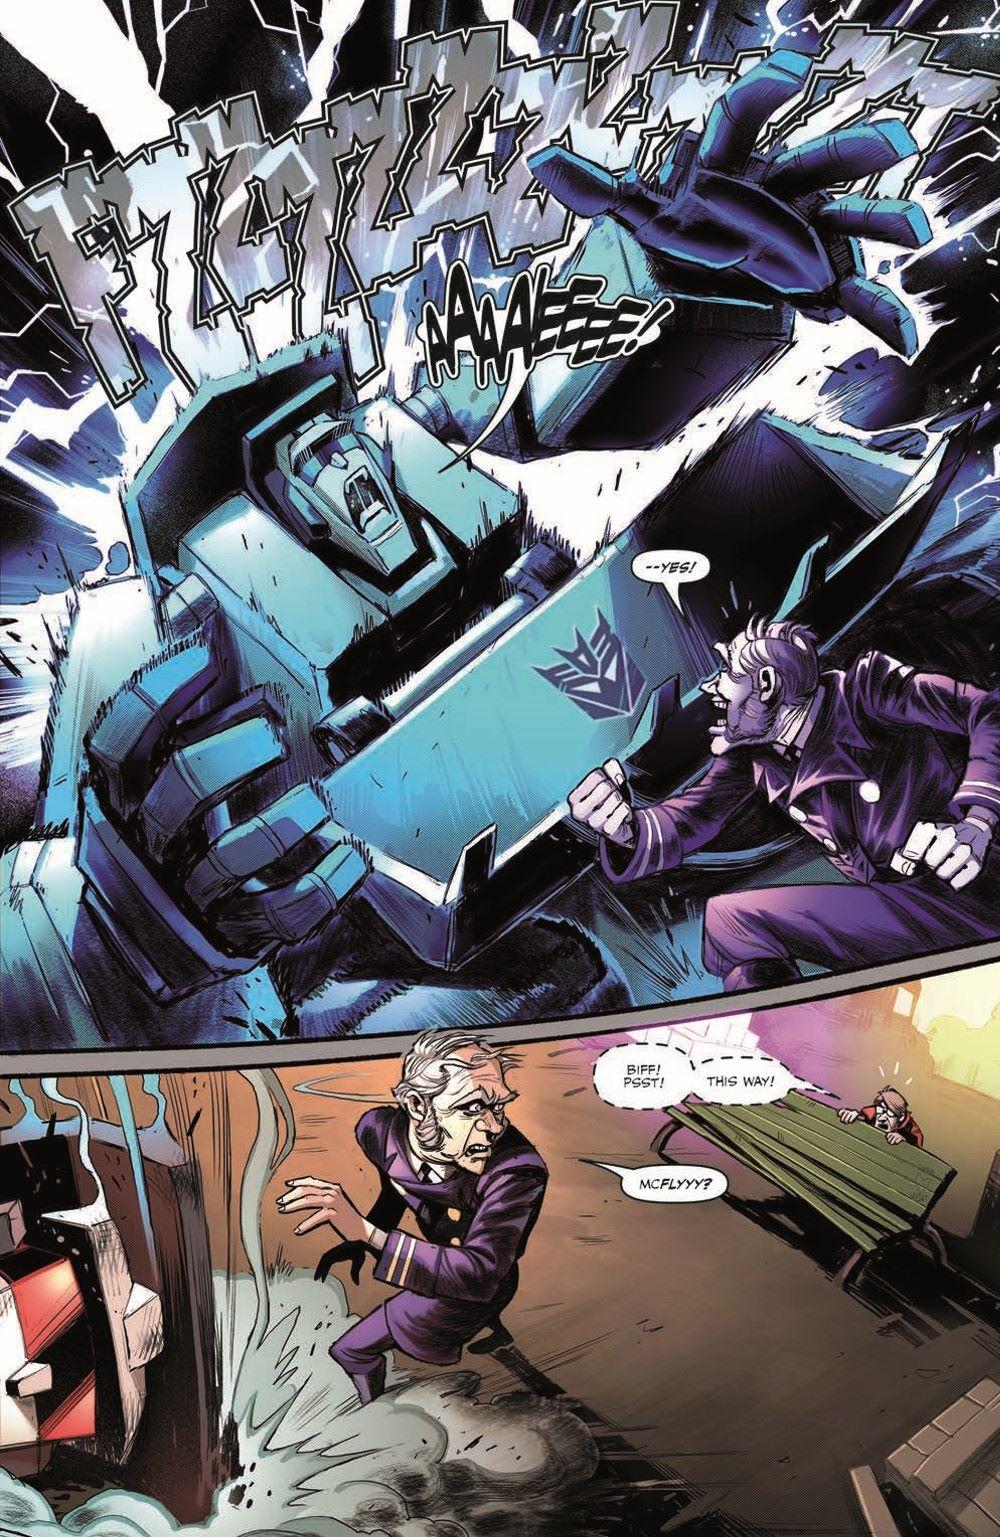 TF_BTTF03-pr-7 ComicList Previews: TRANSFORMERS BACK TO THE FUTURE #3 (OF 4)